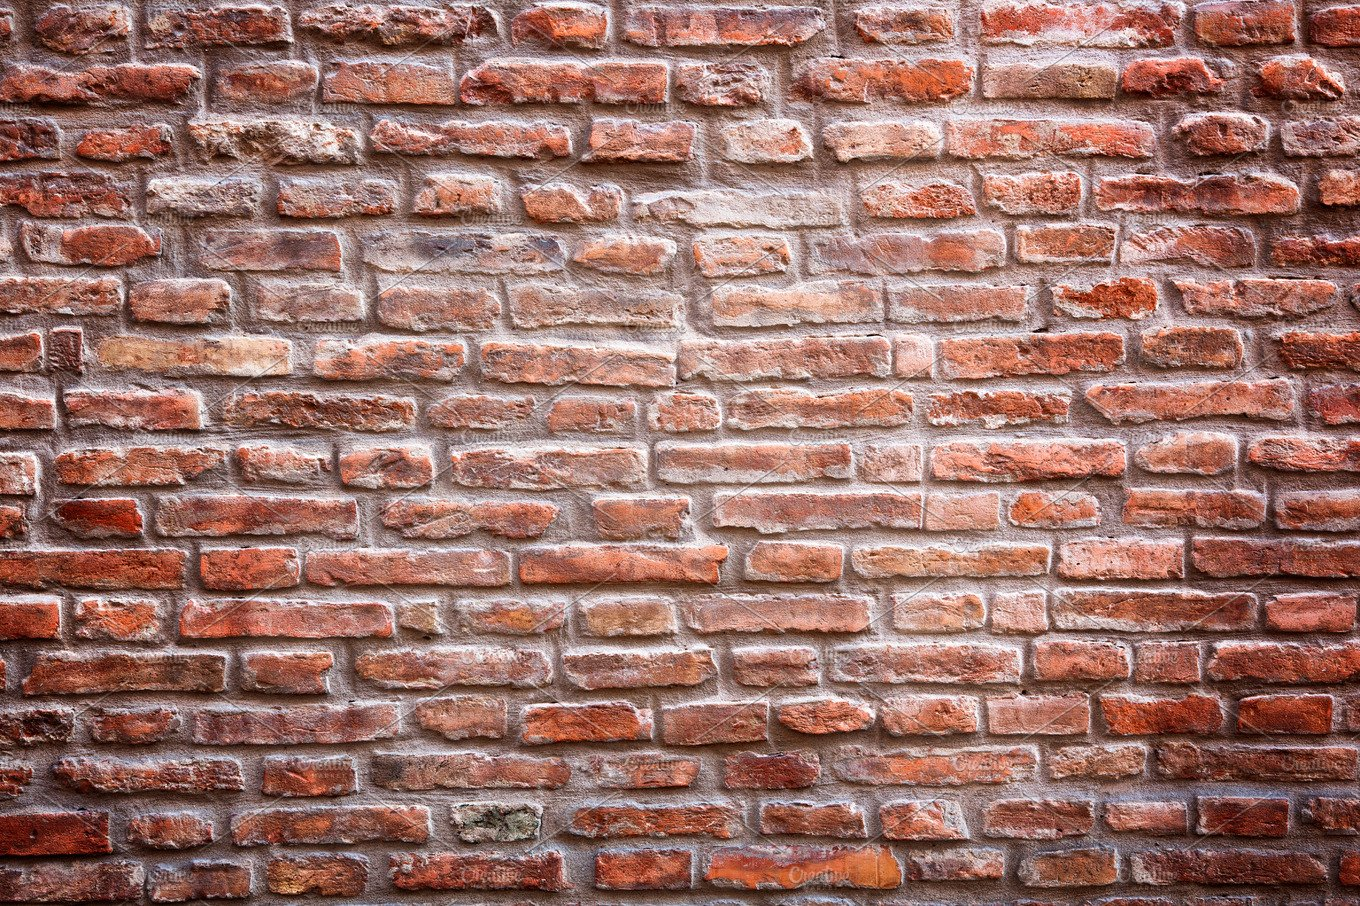 brick wall background architecture photos creative market